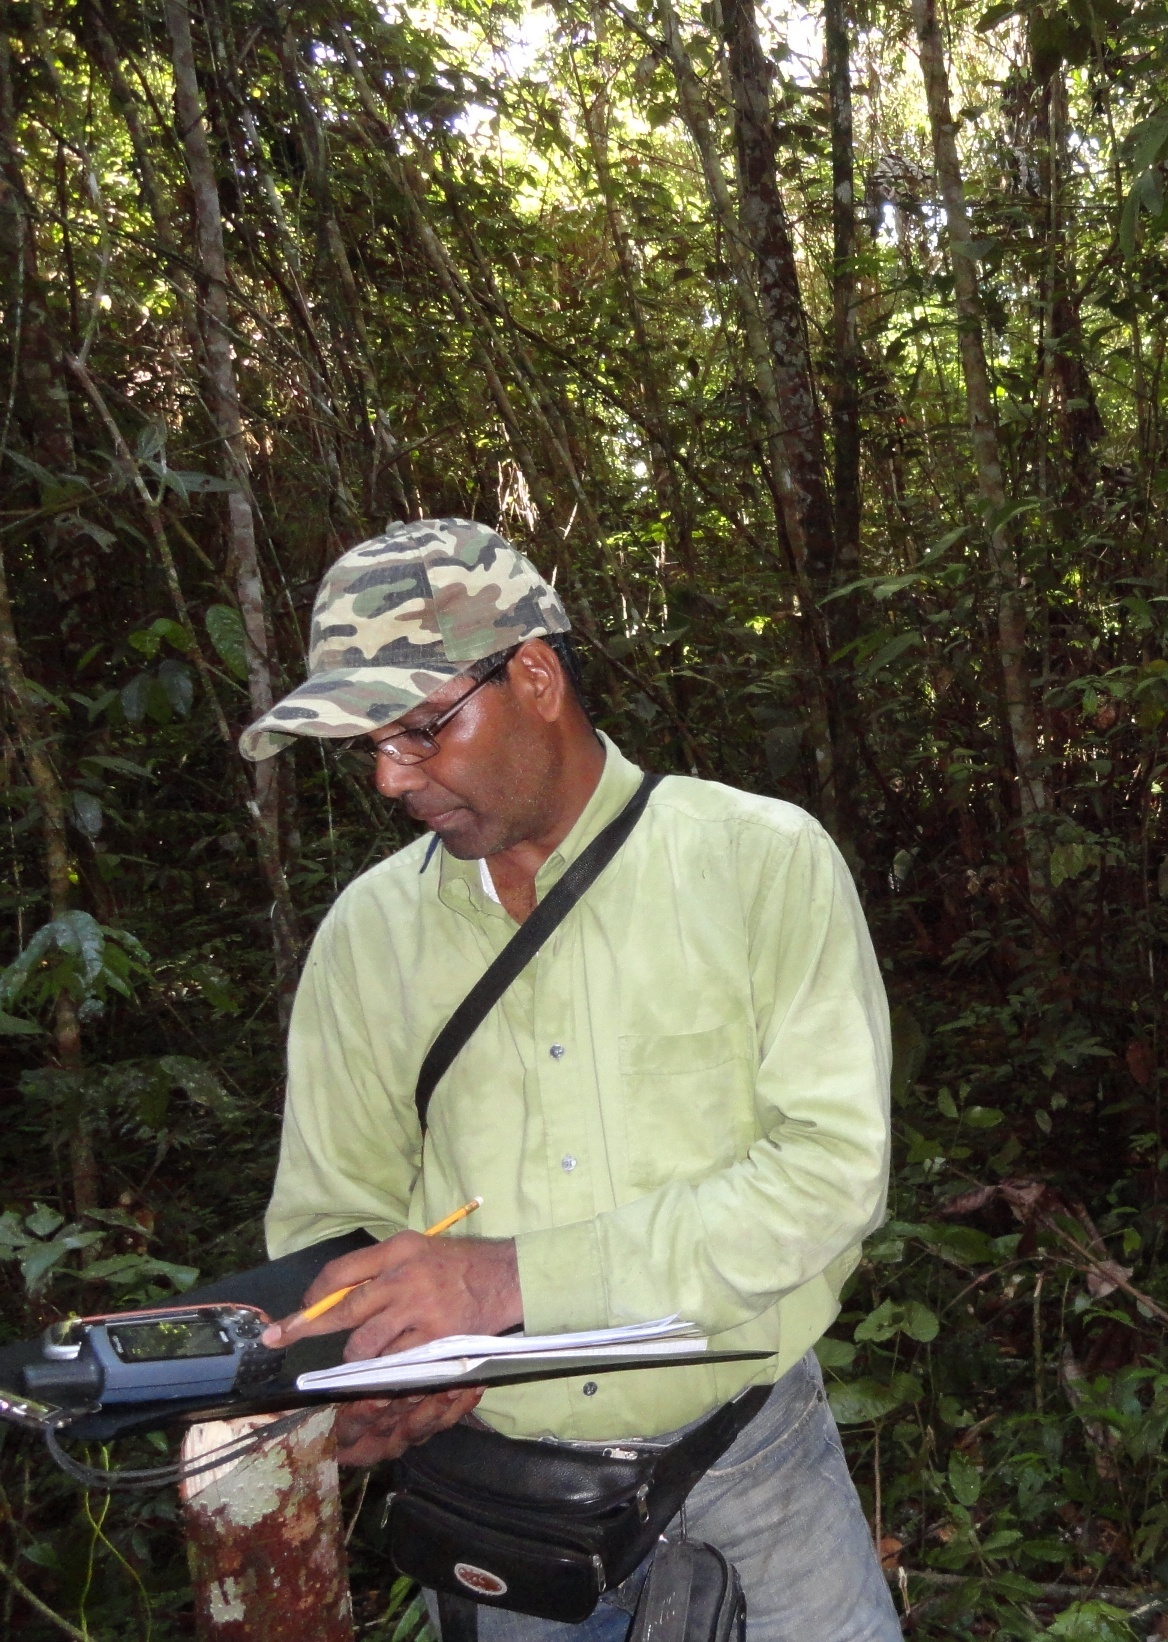 Caption: Mr Naipal at work in the rainforest, Credit: Anton Foek